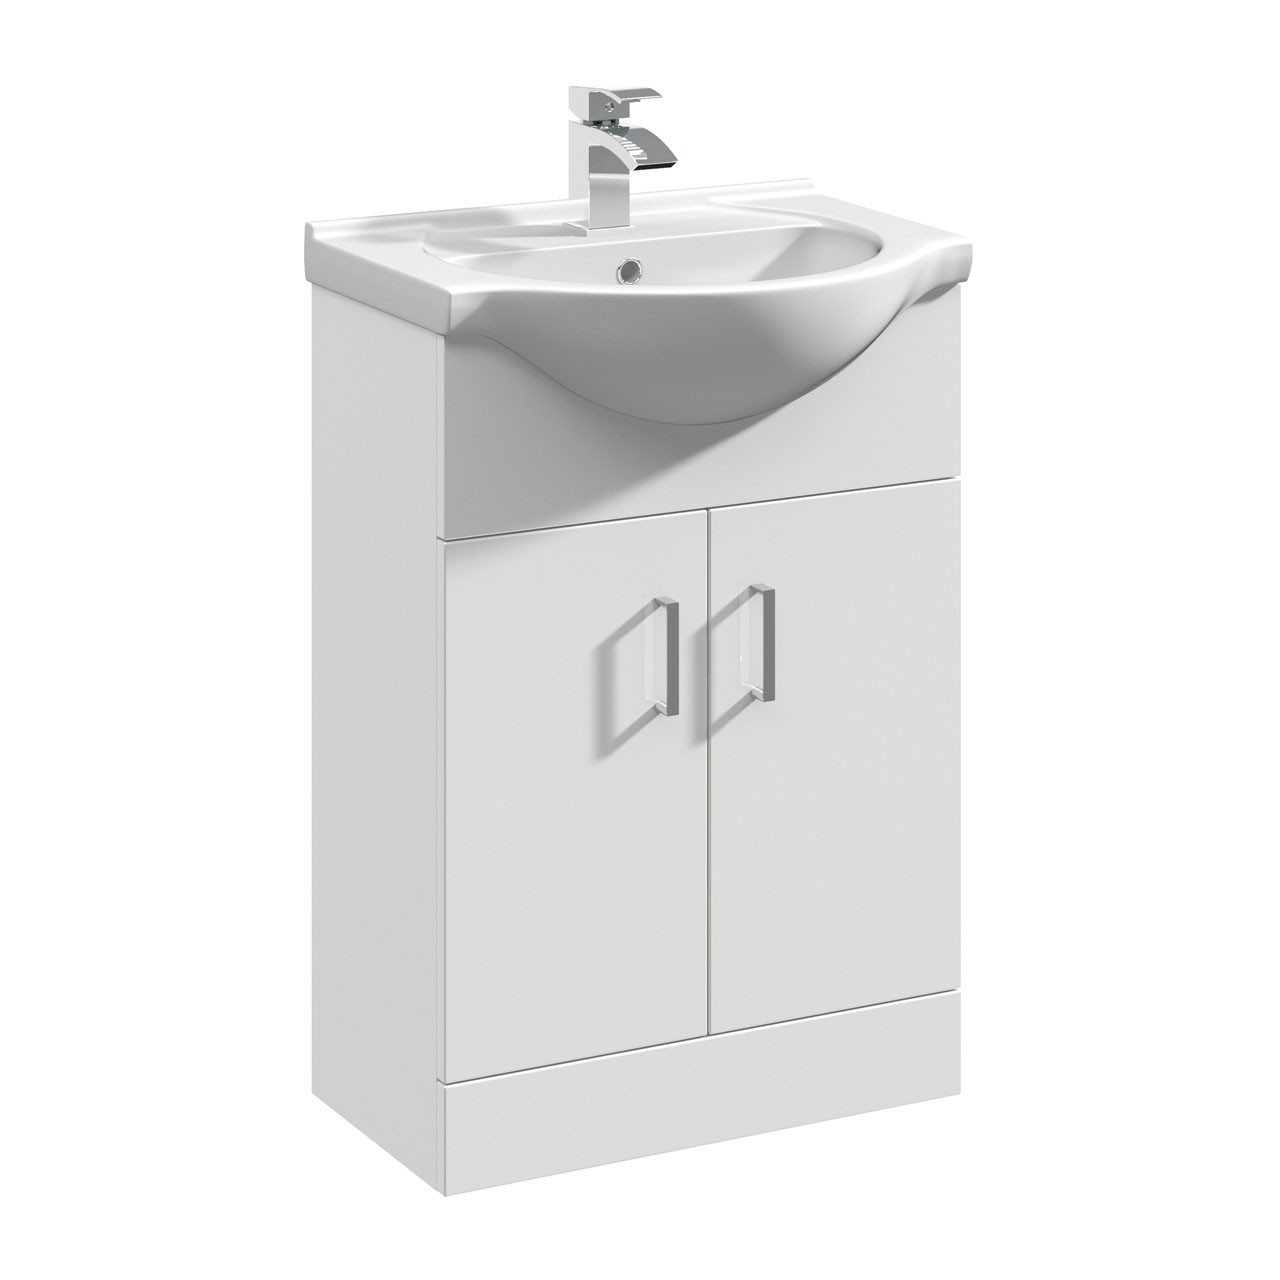 Nuie Mayford Gloss White 550mm Vanity Unit and Curved Basin with 1 Tap Hole - VTY550